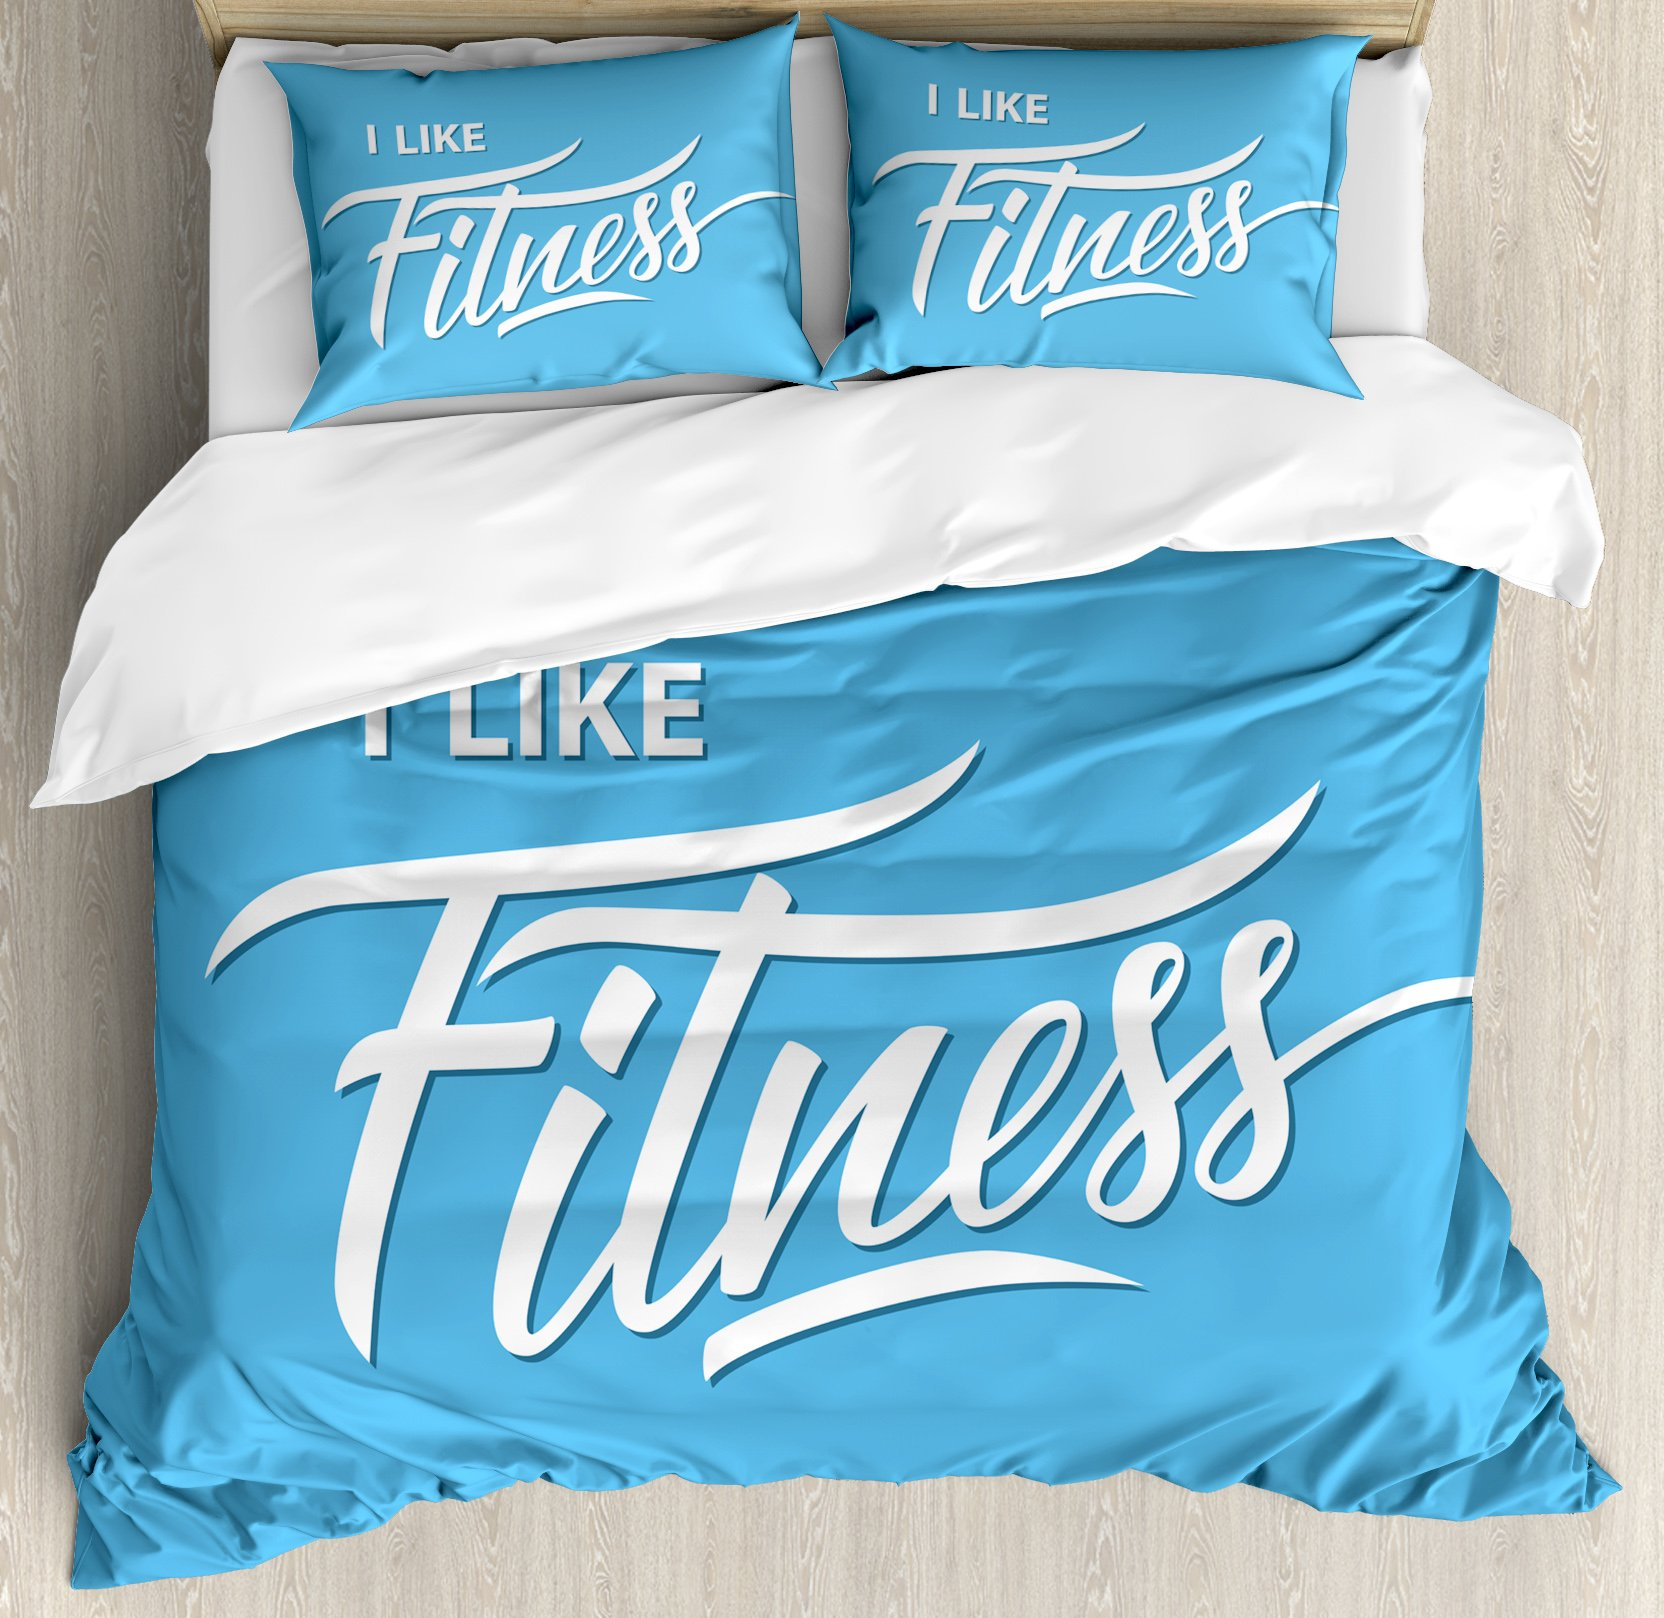 Fitness Duvet Cover Set King Size by Ambesonne, I Like Fitness Sports and Work Out Athletic Lifestyle Theme Exercise Health, Decorative 3 Piece Bedding Set with 2 Pillow Shams, Light Blue White